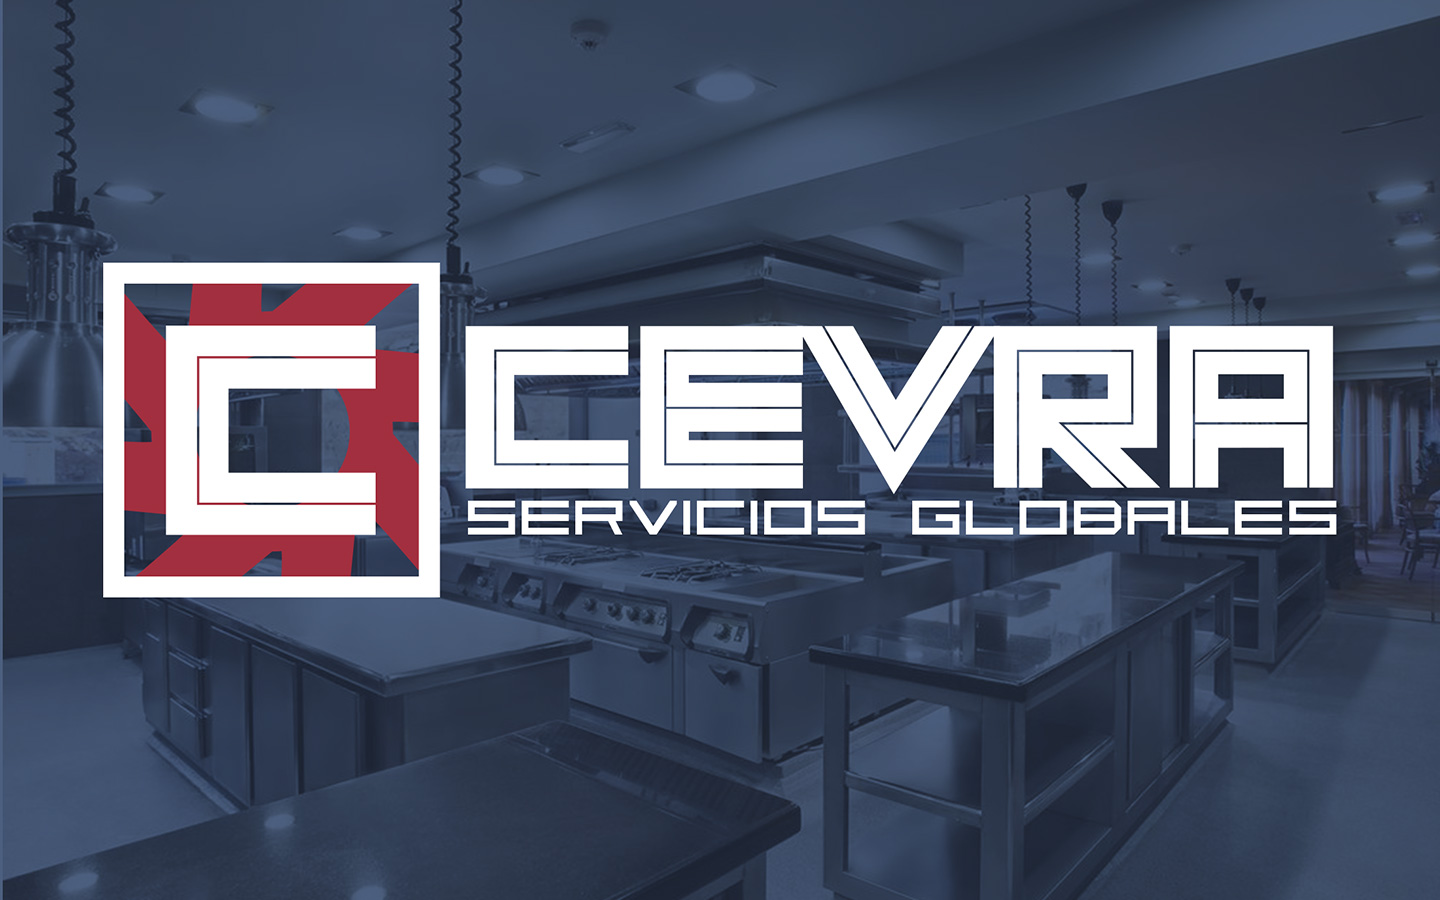 CEVRA Diseño Corporativo by NARAN-HO